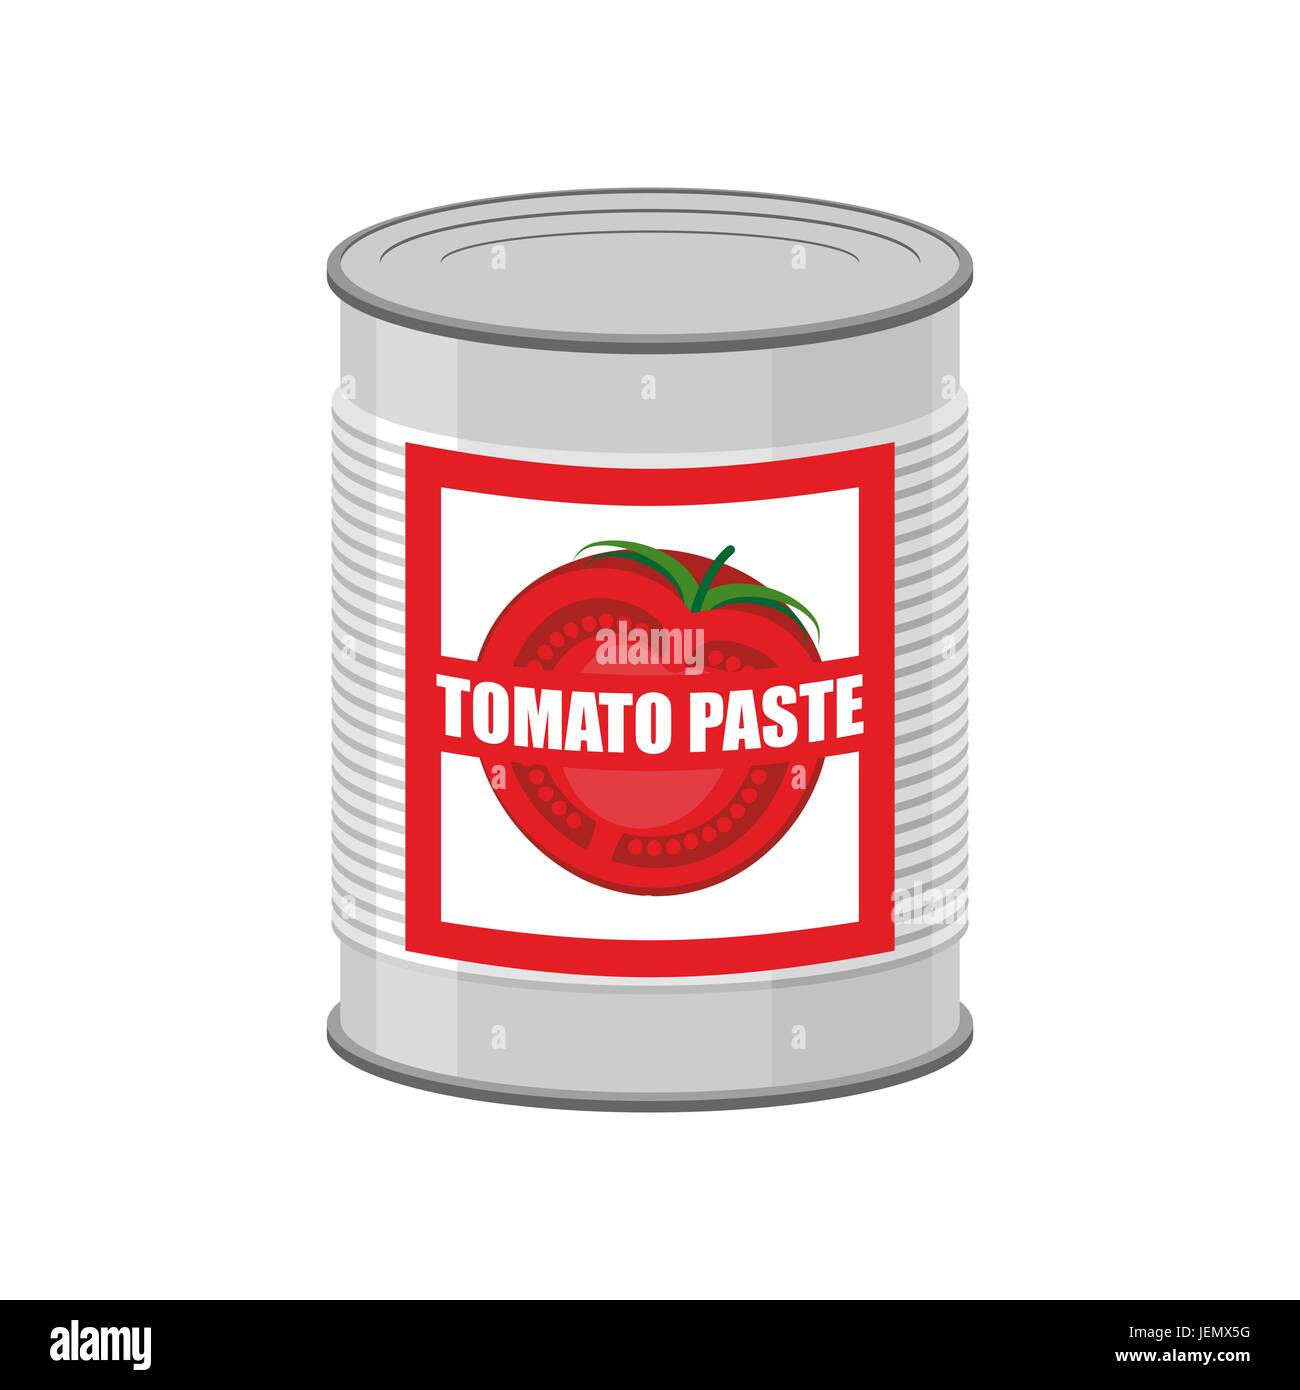 Tomato paste tin can. Canned food with tomatoes - Stock Vector